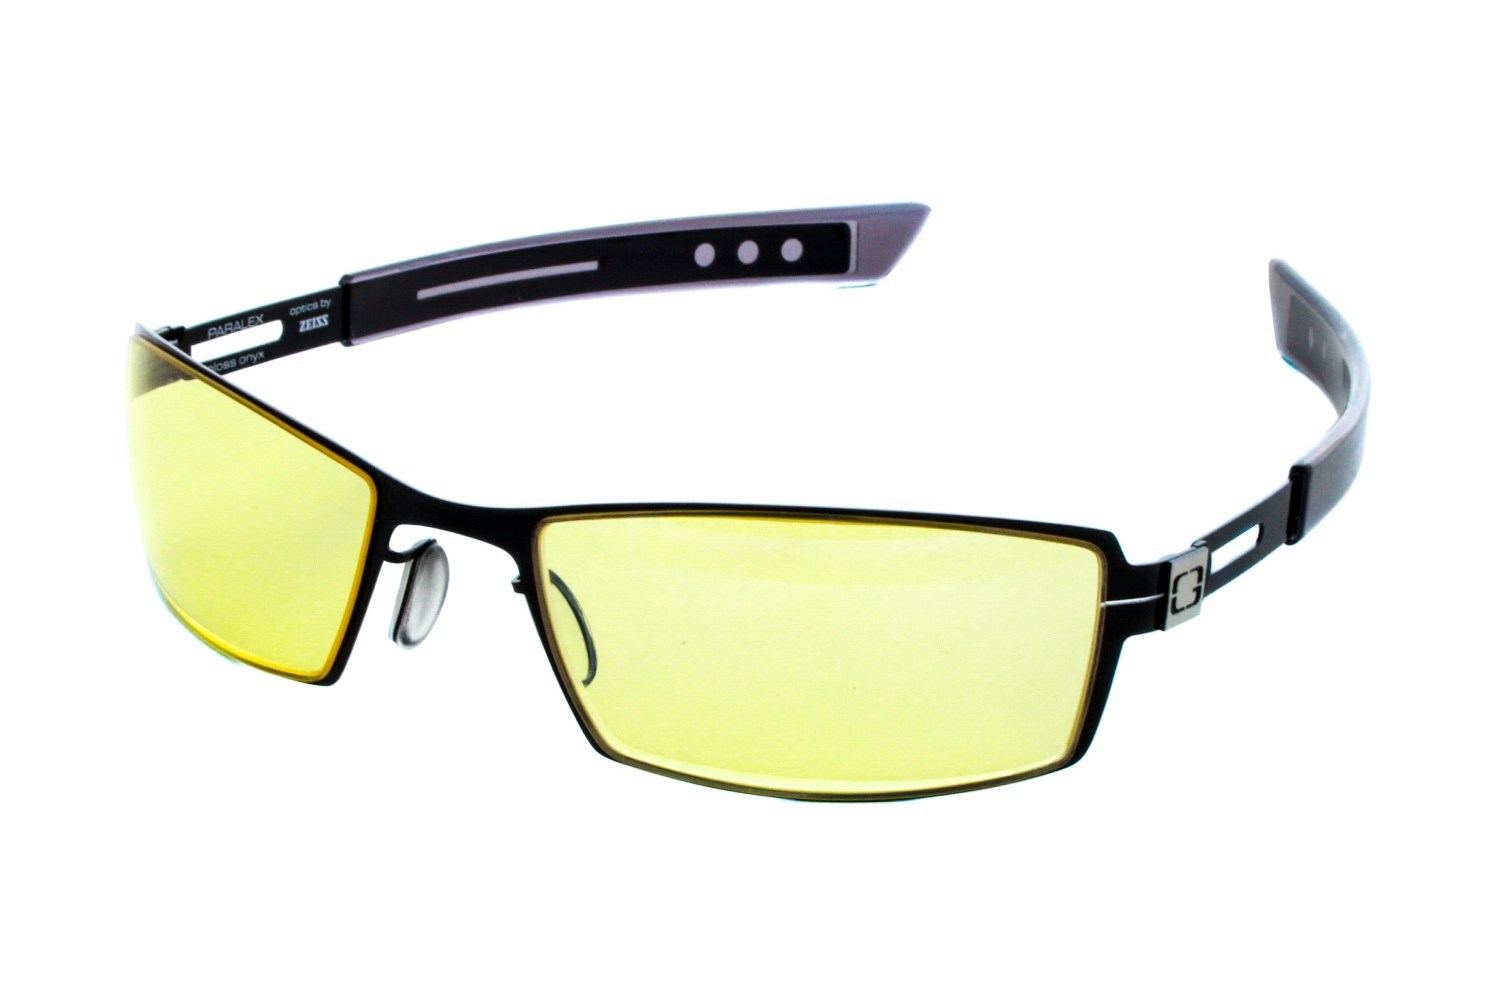 Gunnar Paralex Gaming Glasses